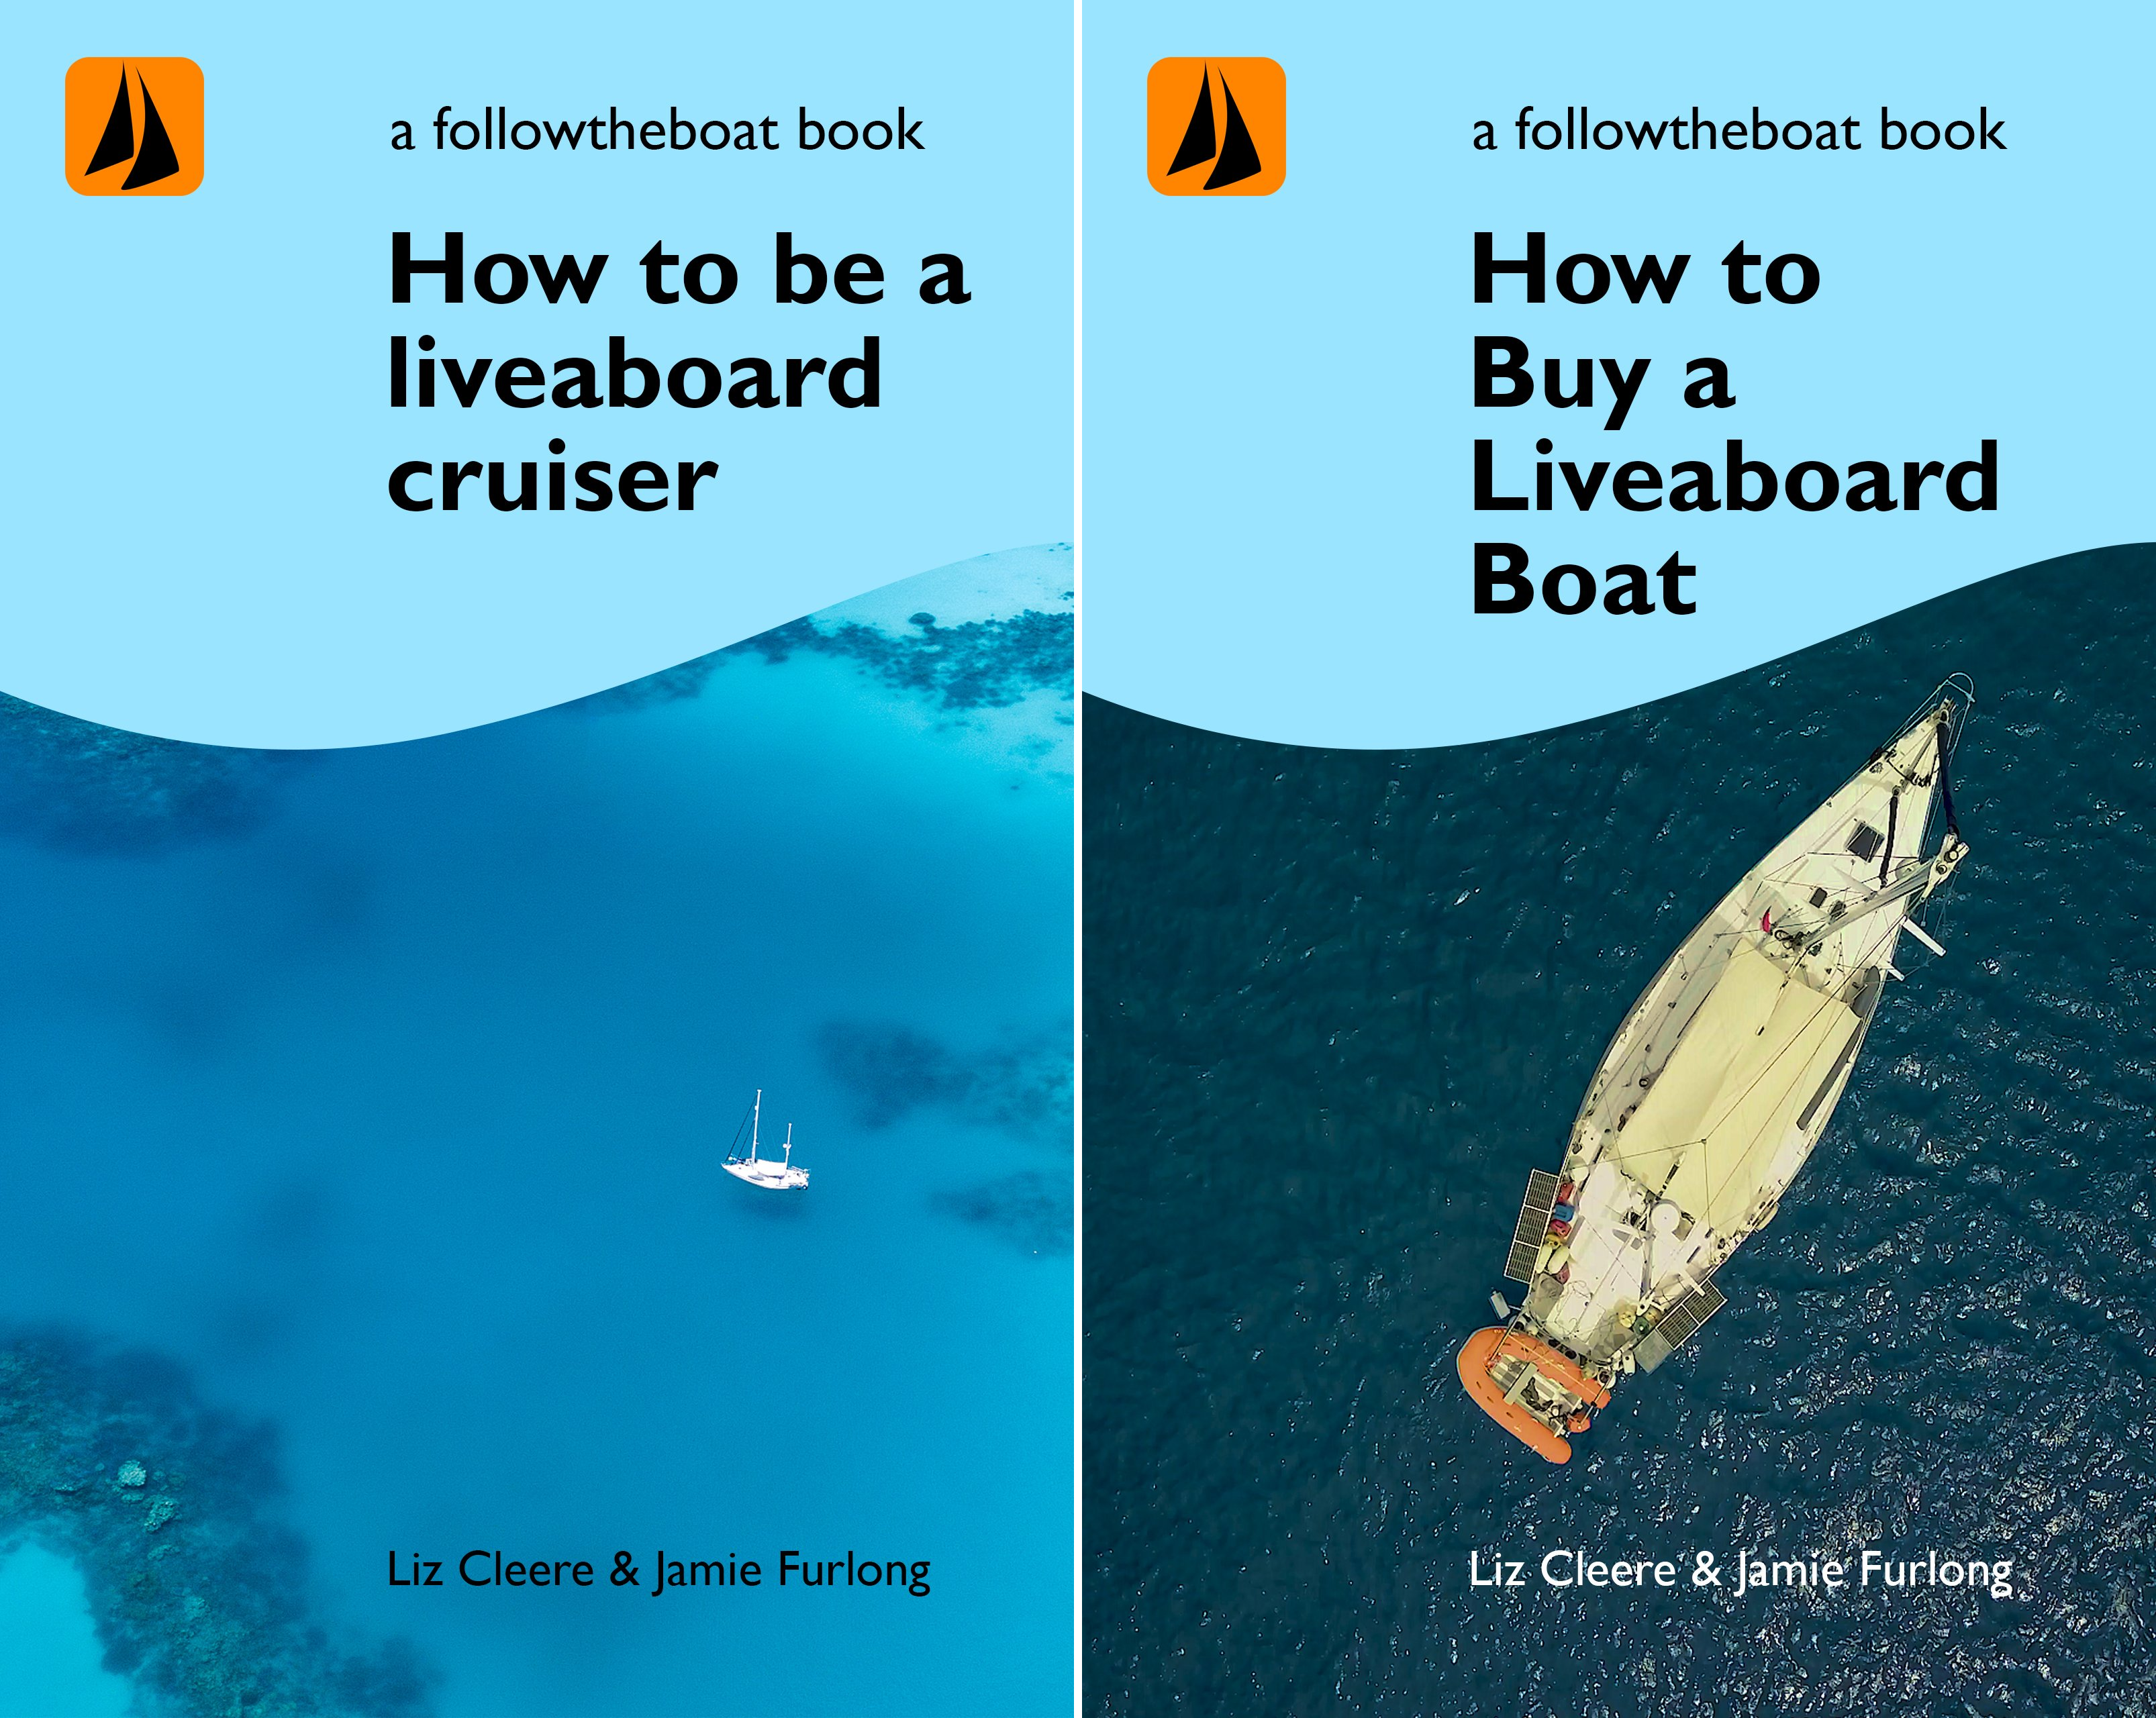 Sailing How To With Followtheboat (2 Book Series)